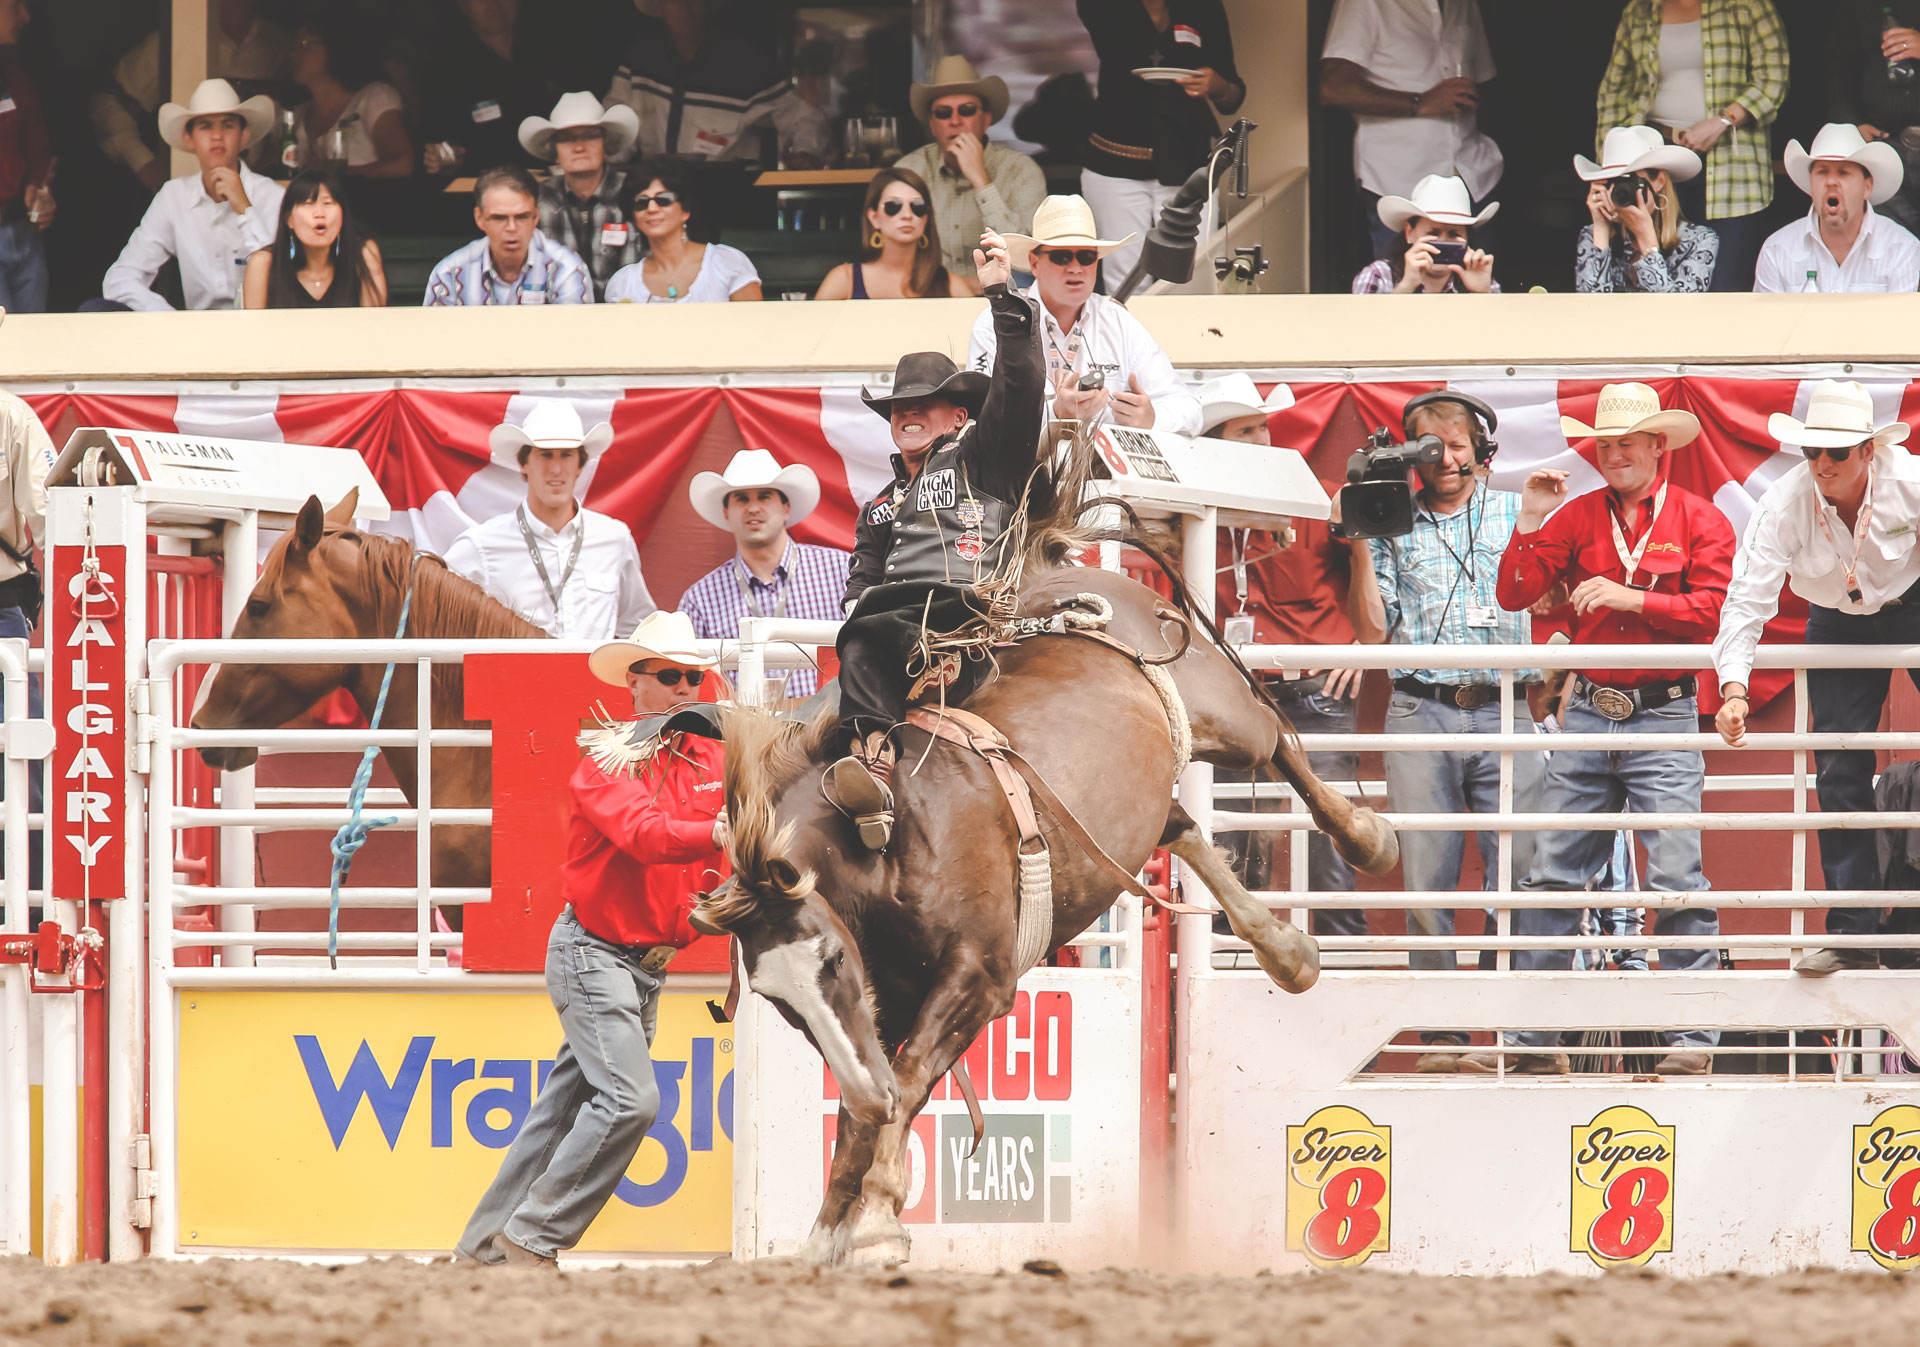 The Calgary Stampede Rodeo includes 9 exciting events.